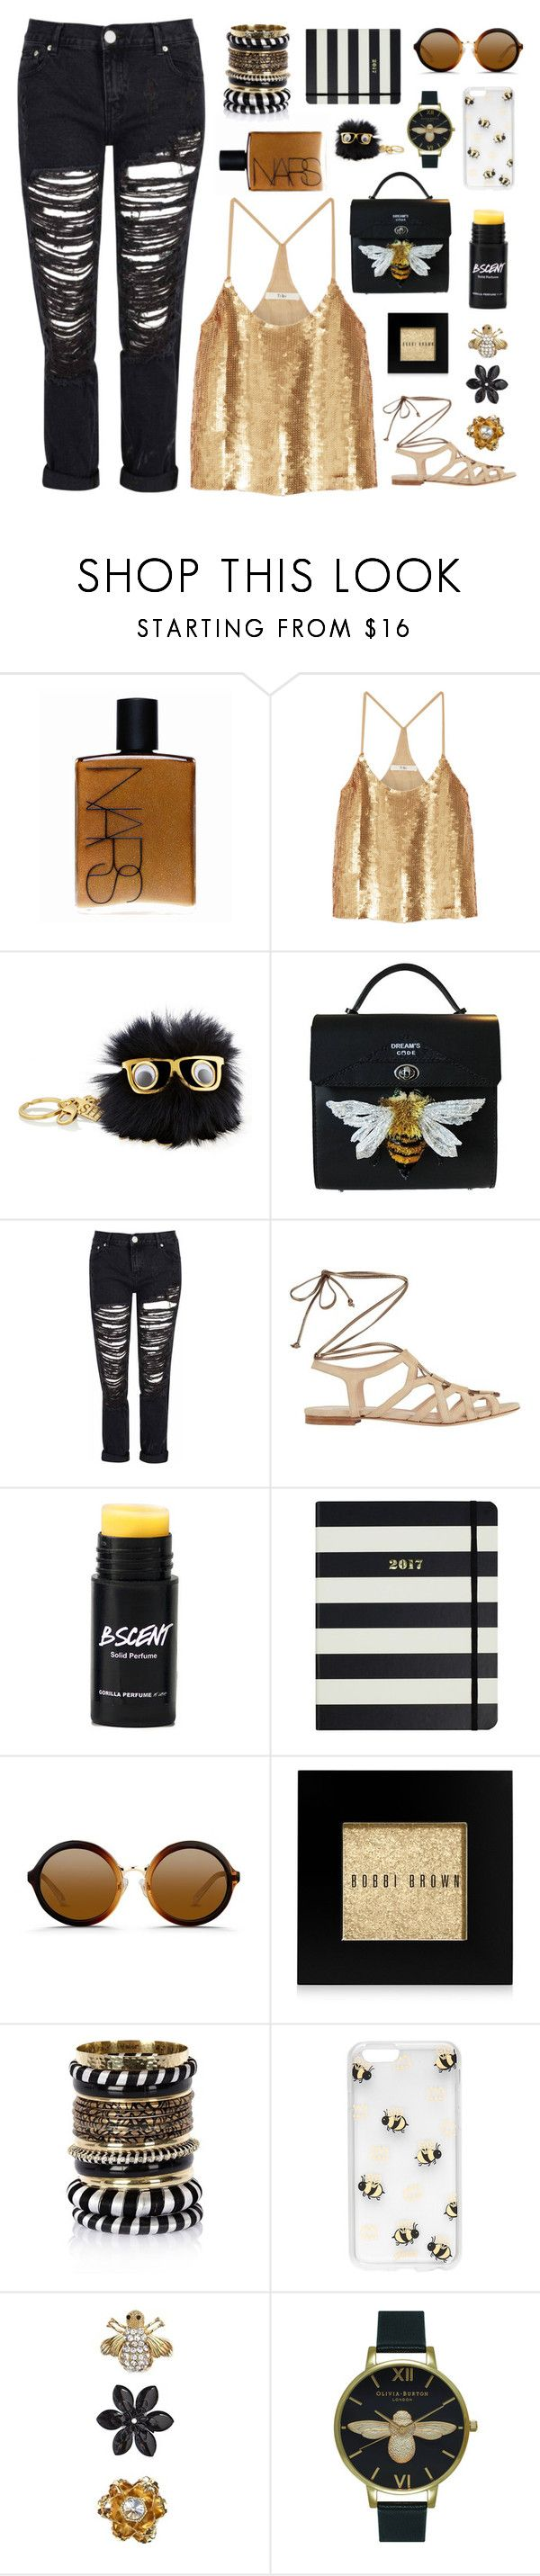 """B-e-etnik"" by gbaby707 ❤ liked on Polyvore featuring NARS Cosmetics, TIBI, Sophie Hulme, Glamorous, Duccio Venturi, Kate Spade, 3.1 Phillip Lim, Bobbi Brown Cosmetics, River Island and Sonix"